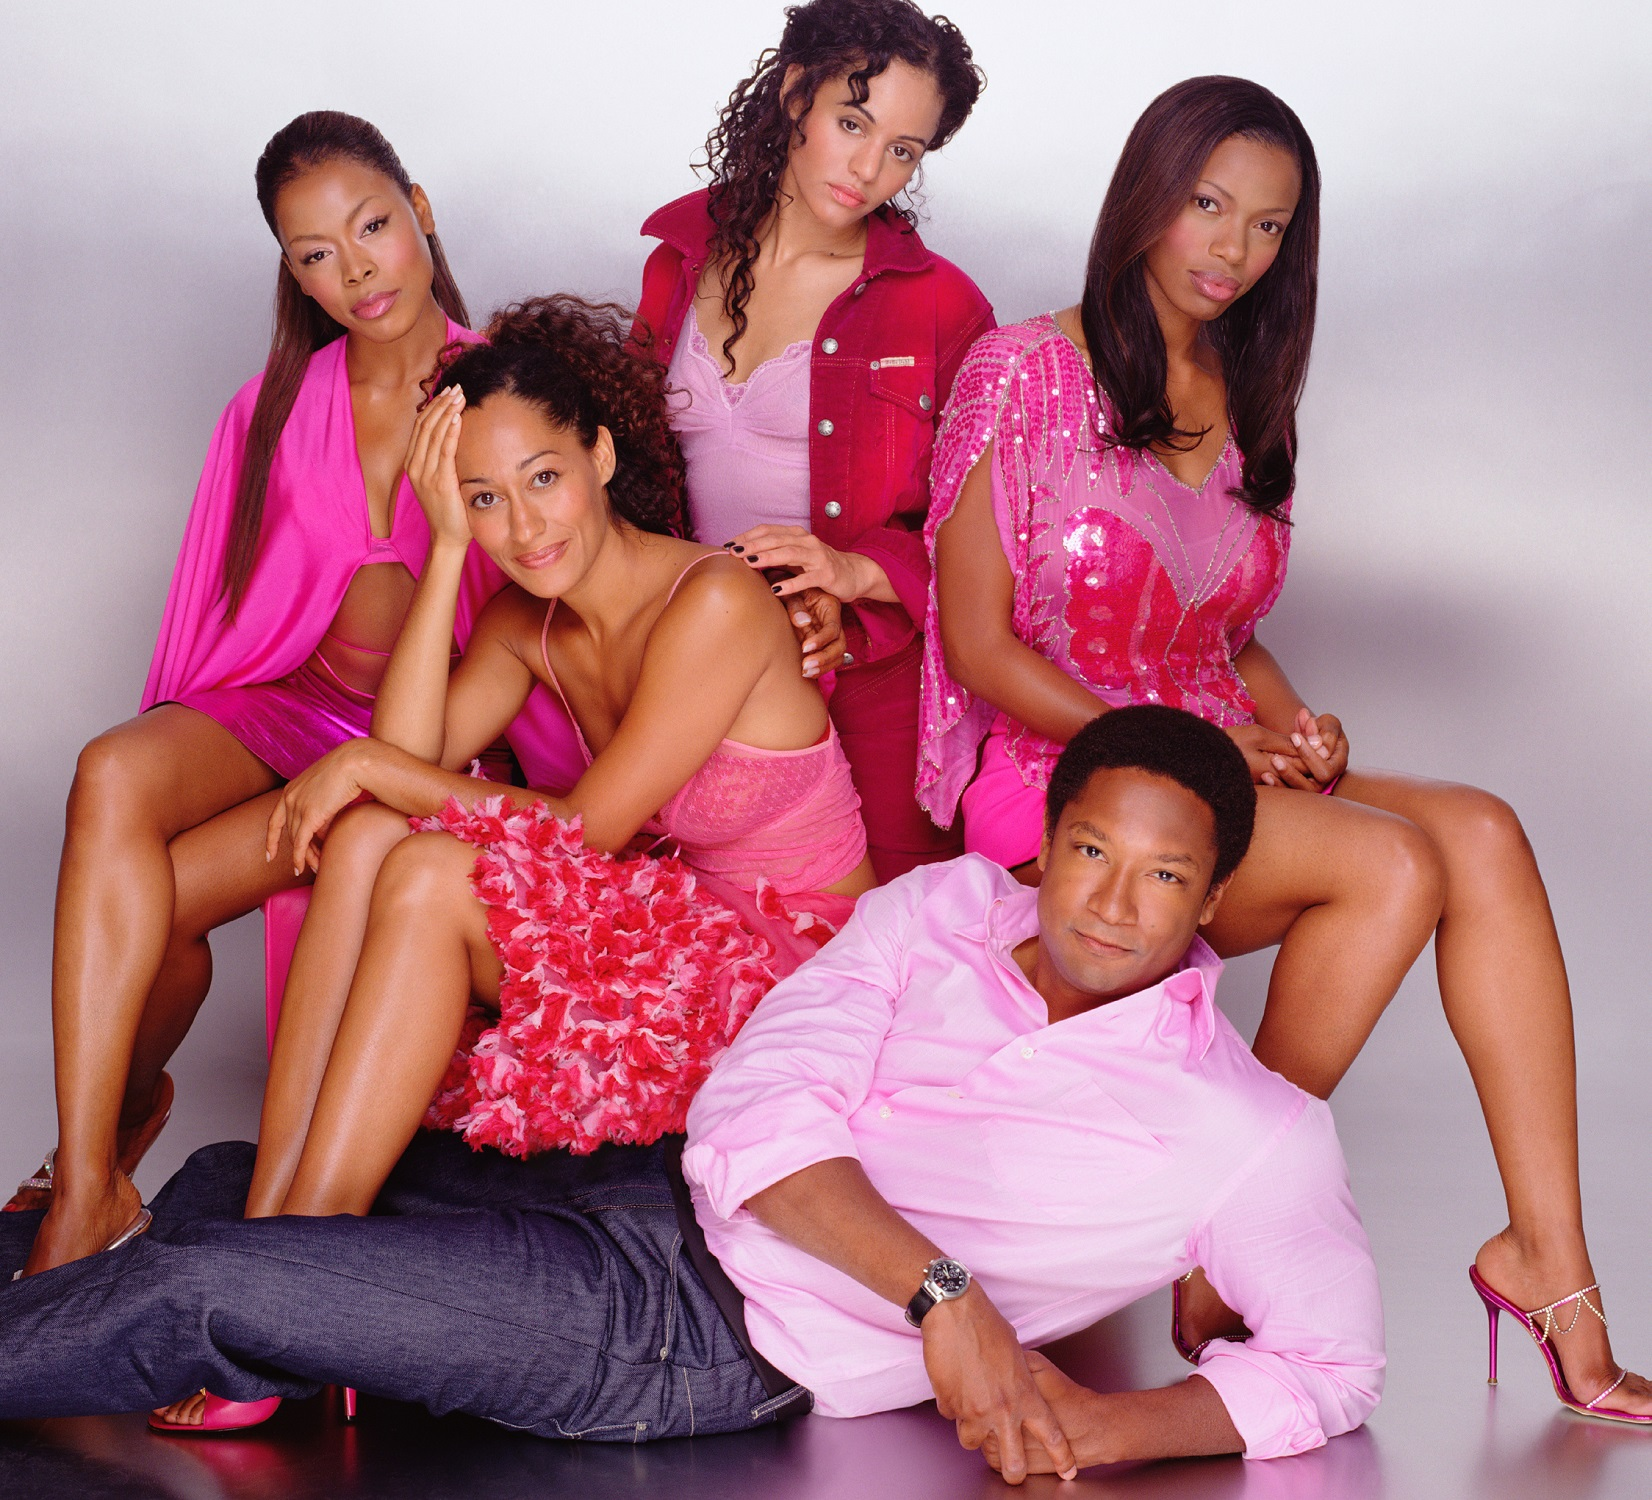 In-celebration-of-NationalGirlfriendsDay-TV-One-will-host-a-special-marathon-featuring-the-hit-series-Girlfriends-faith-health-and-home-lifestyle-blog.